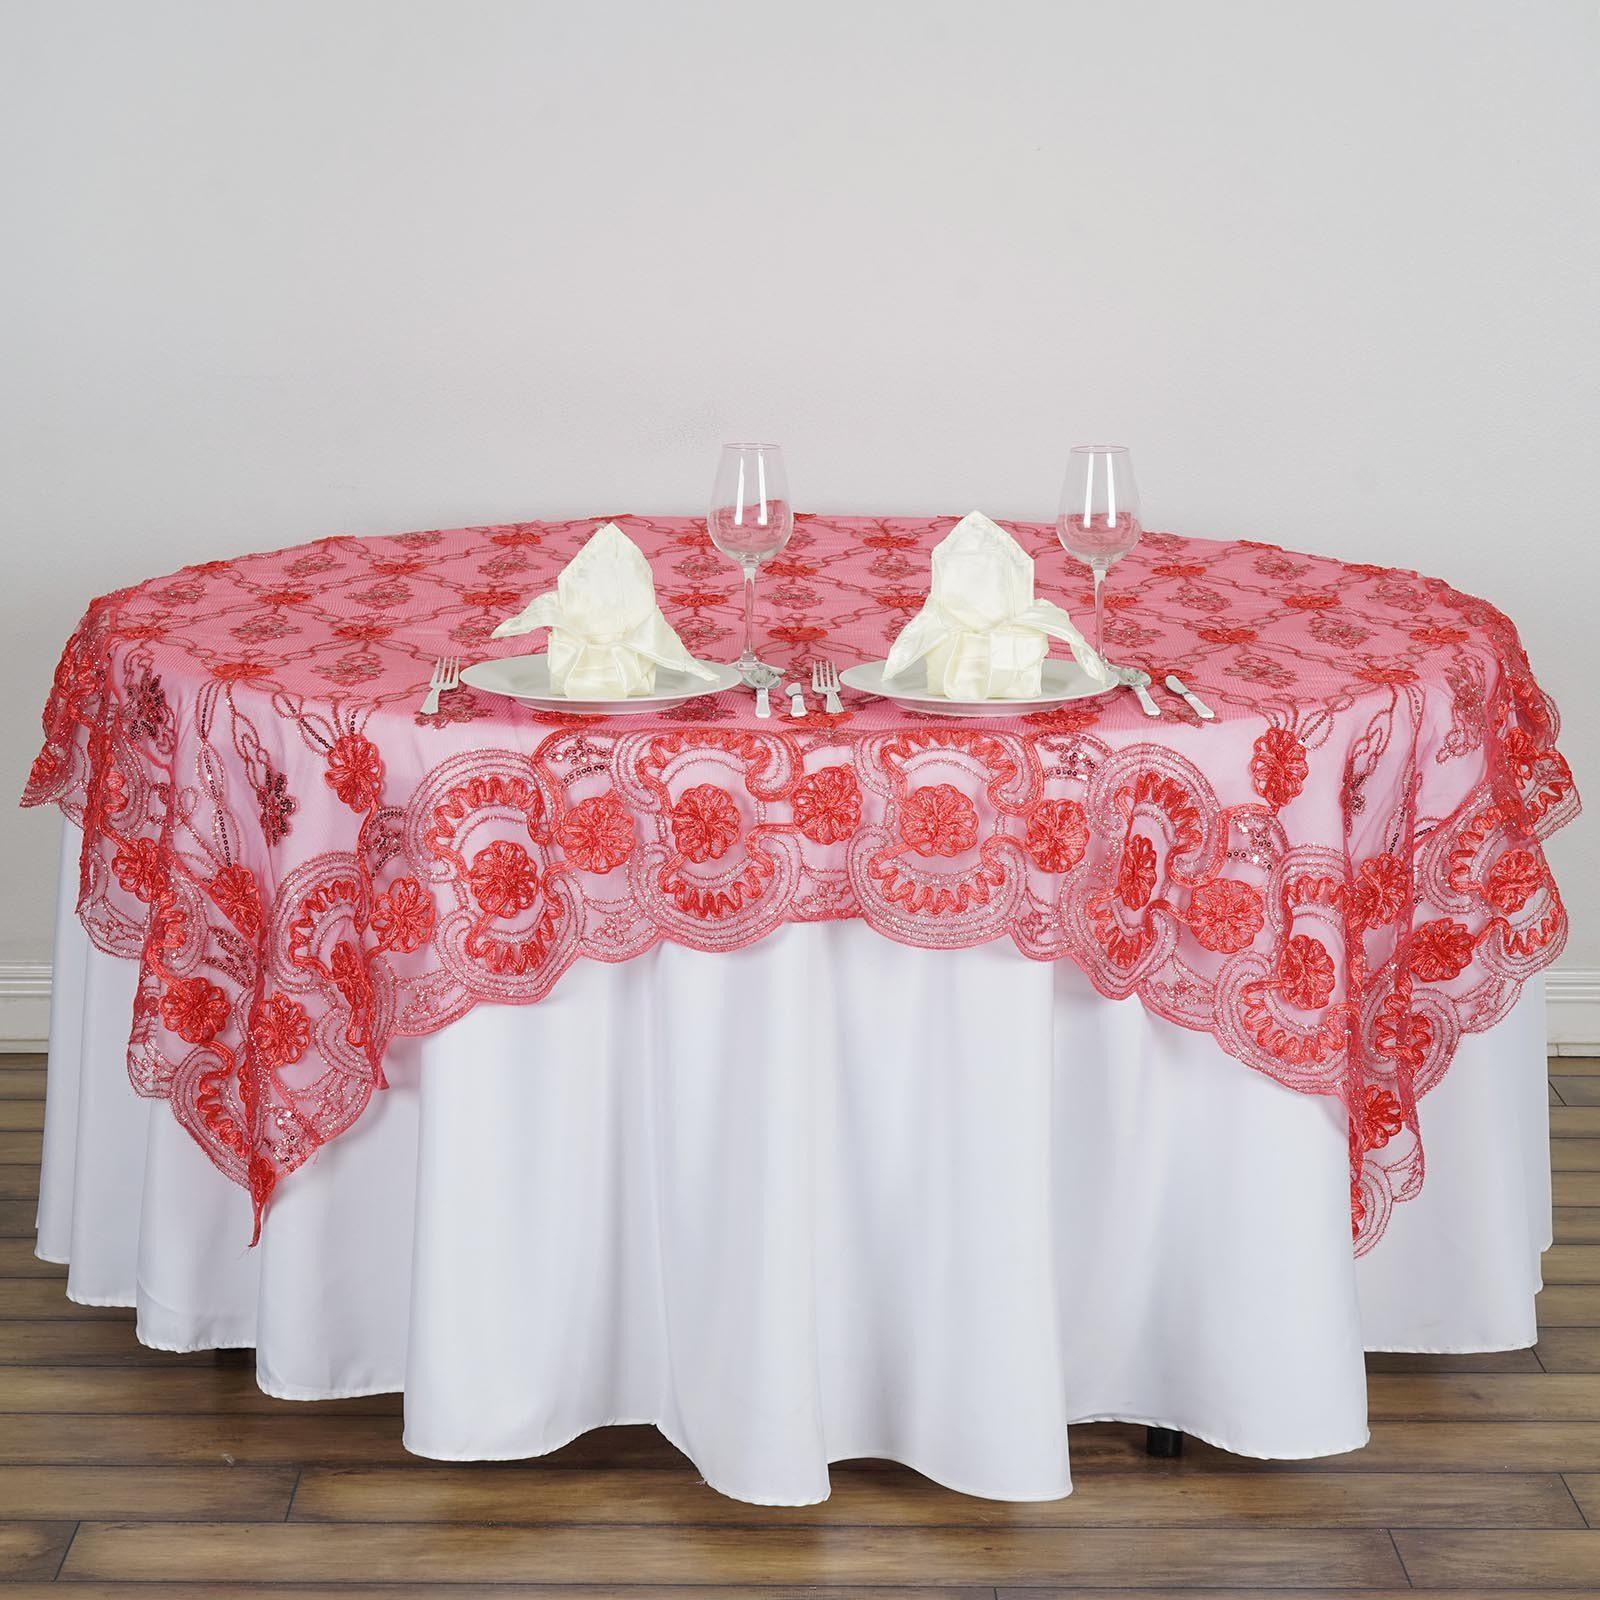 72 Satin Floral Design Square Overlay With Lace Netting For Wedding